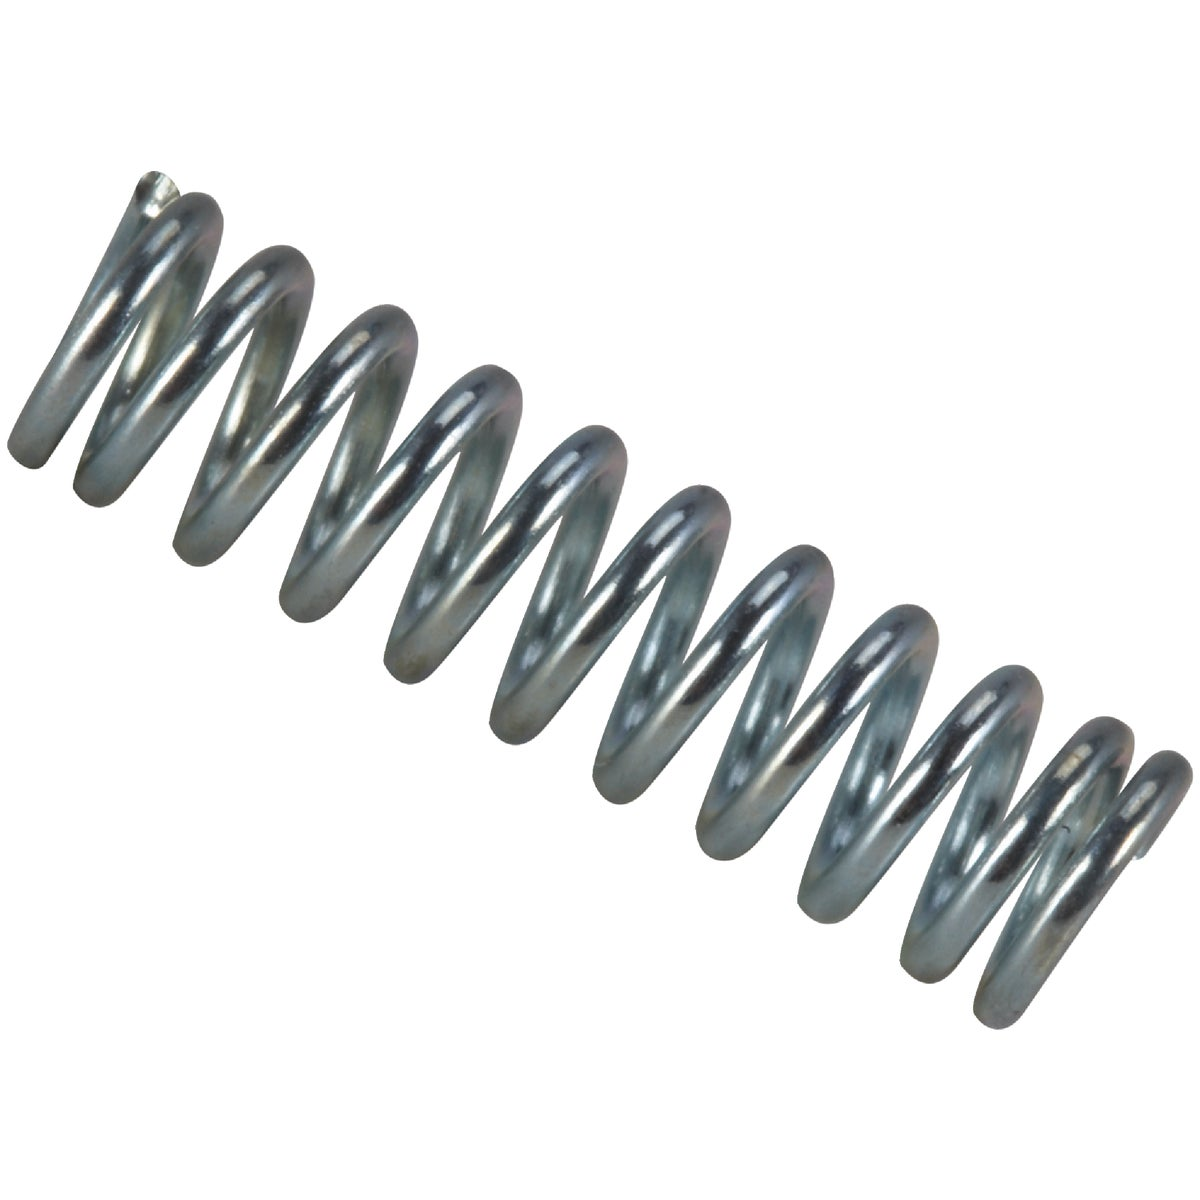 COMPRESSION SPRING - C-660 by Century Spring Corp